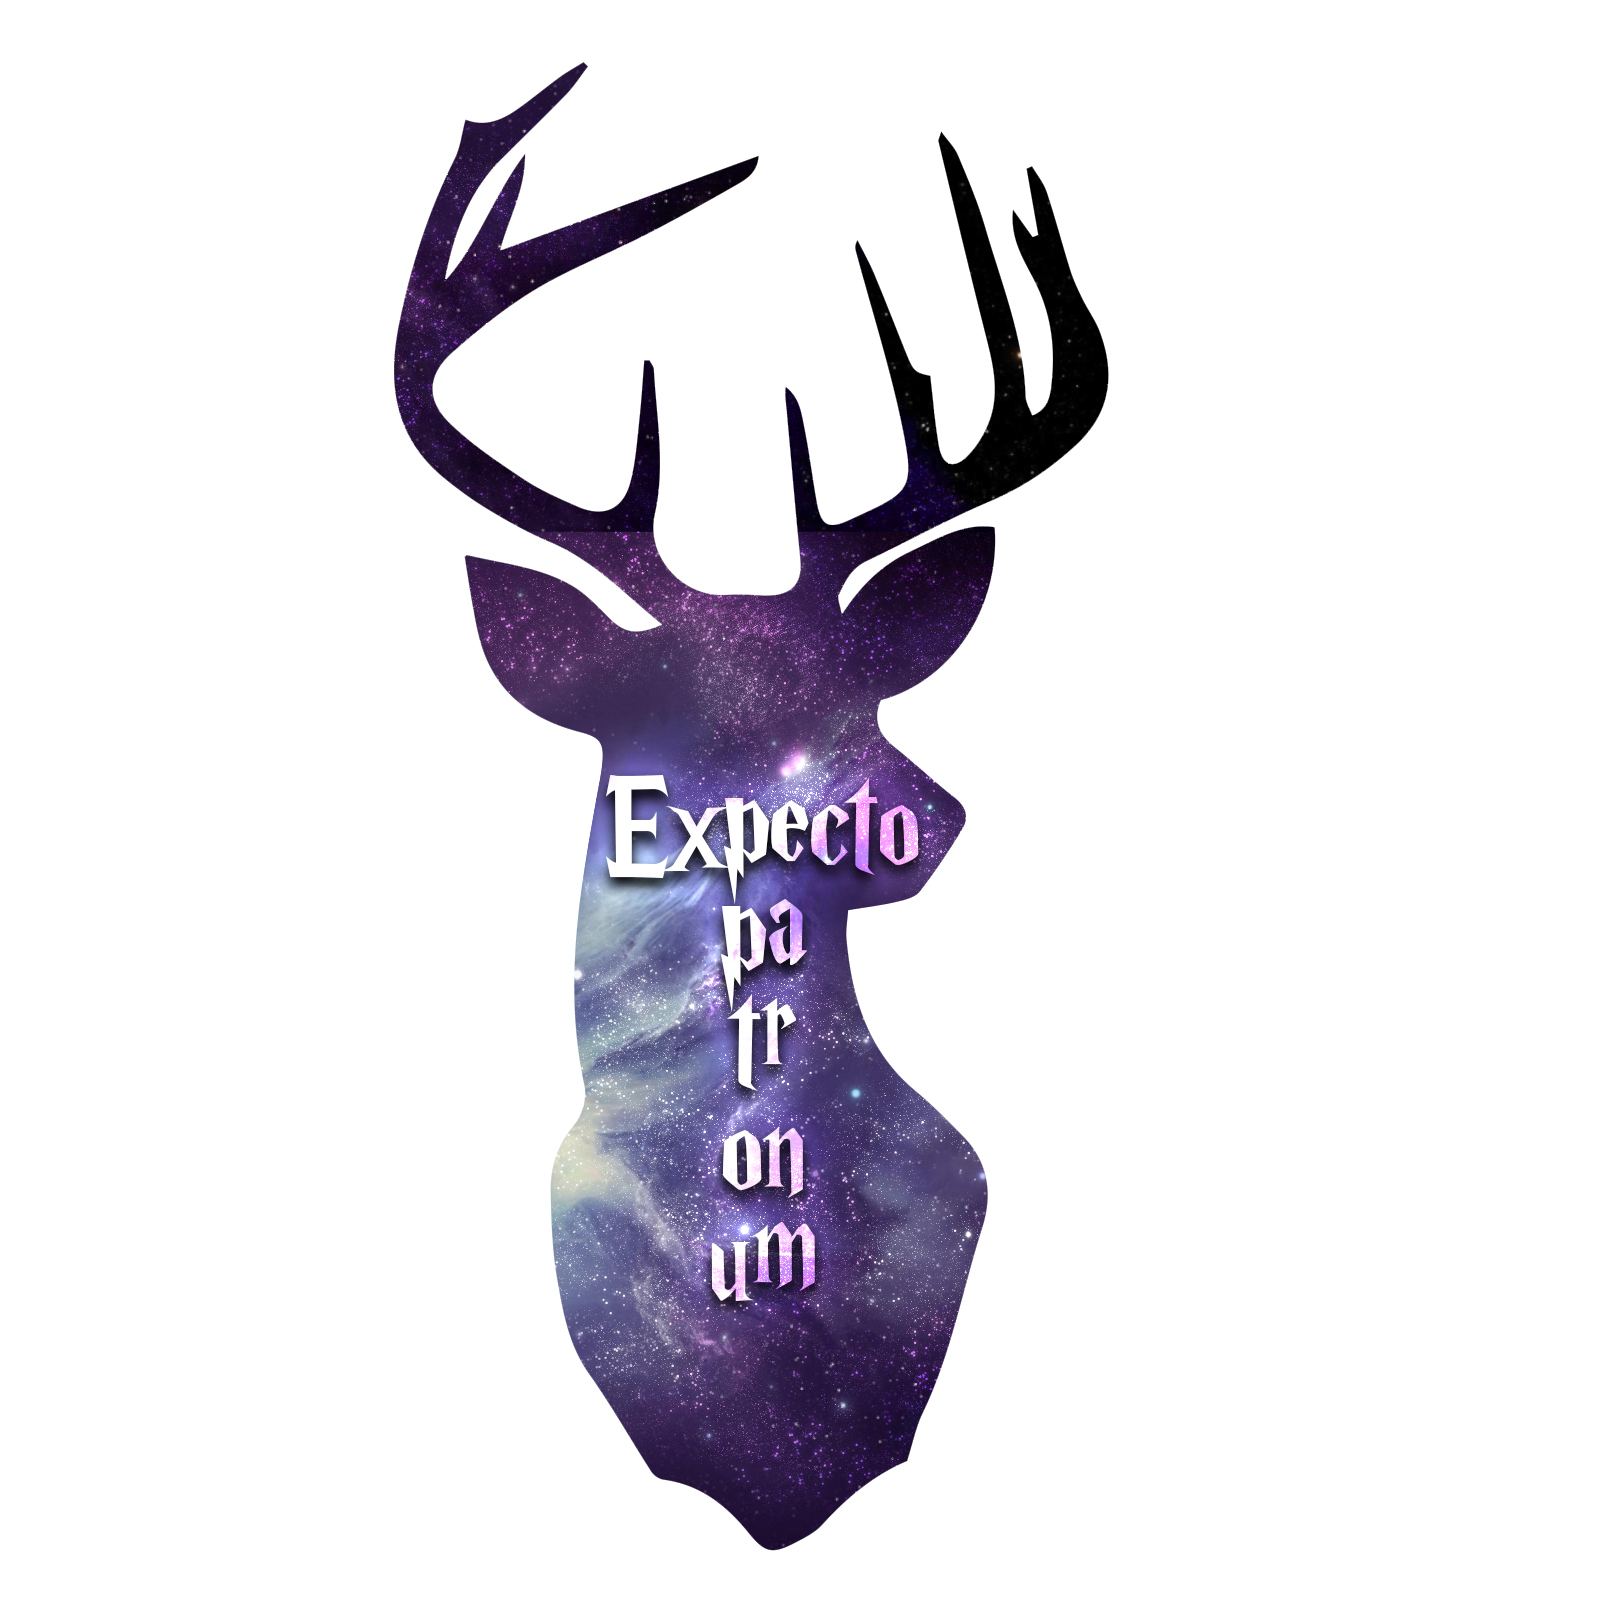 Baby Wall Sticker Expecto Patronum Spell Inspired Deer Head Magic Sticker 5 Quot